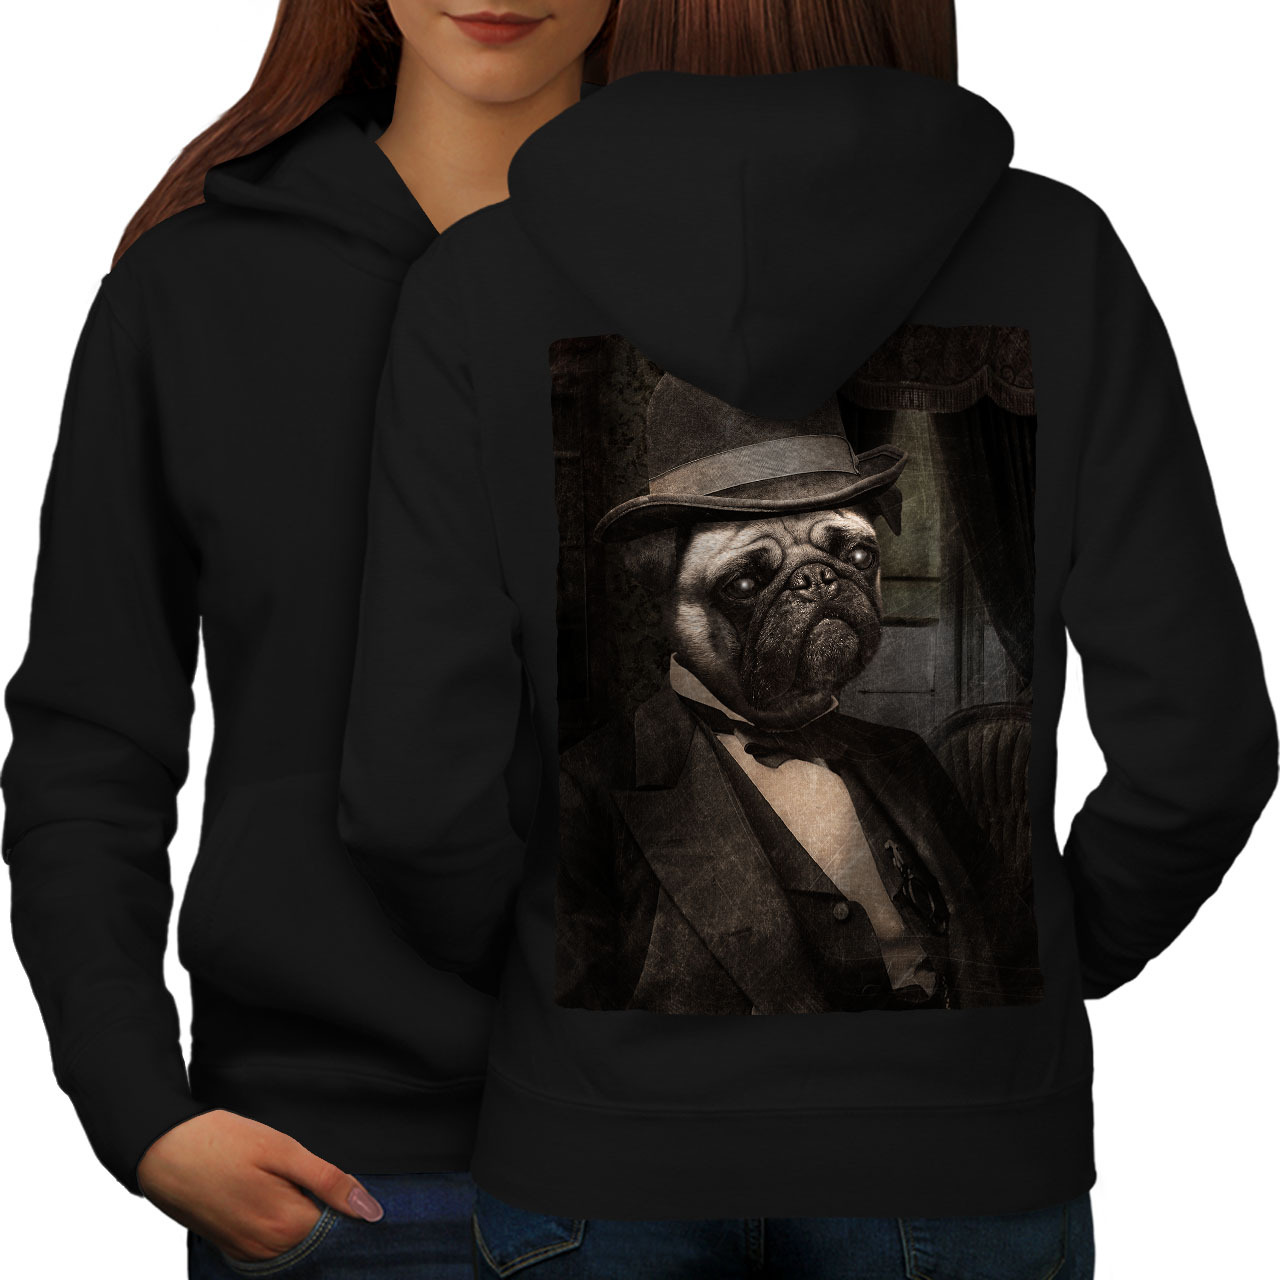 Primary image for Sir Pug Cute Funny Dog Sweatshirt Hoody Puppy Man Women Hoodie Back